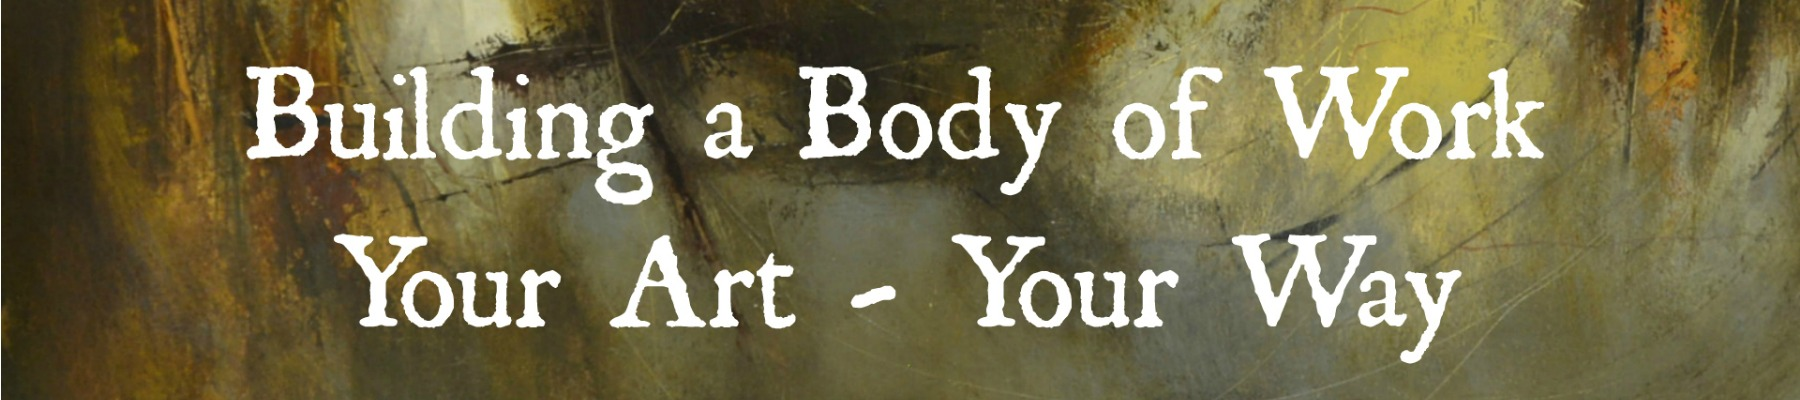 Building a Body of Work by Gillian Lee Smith